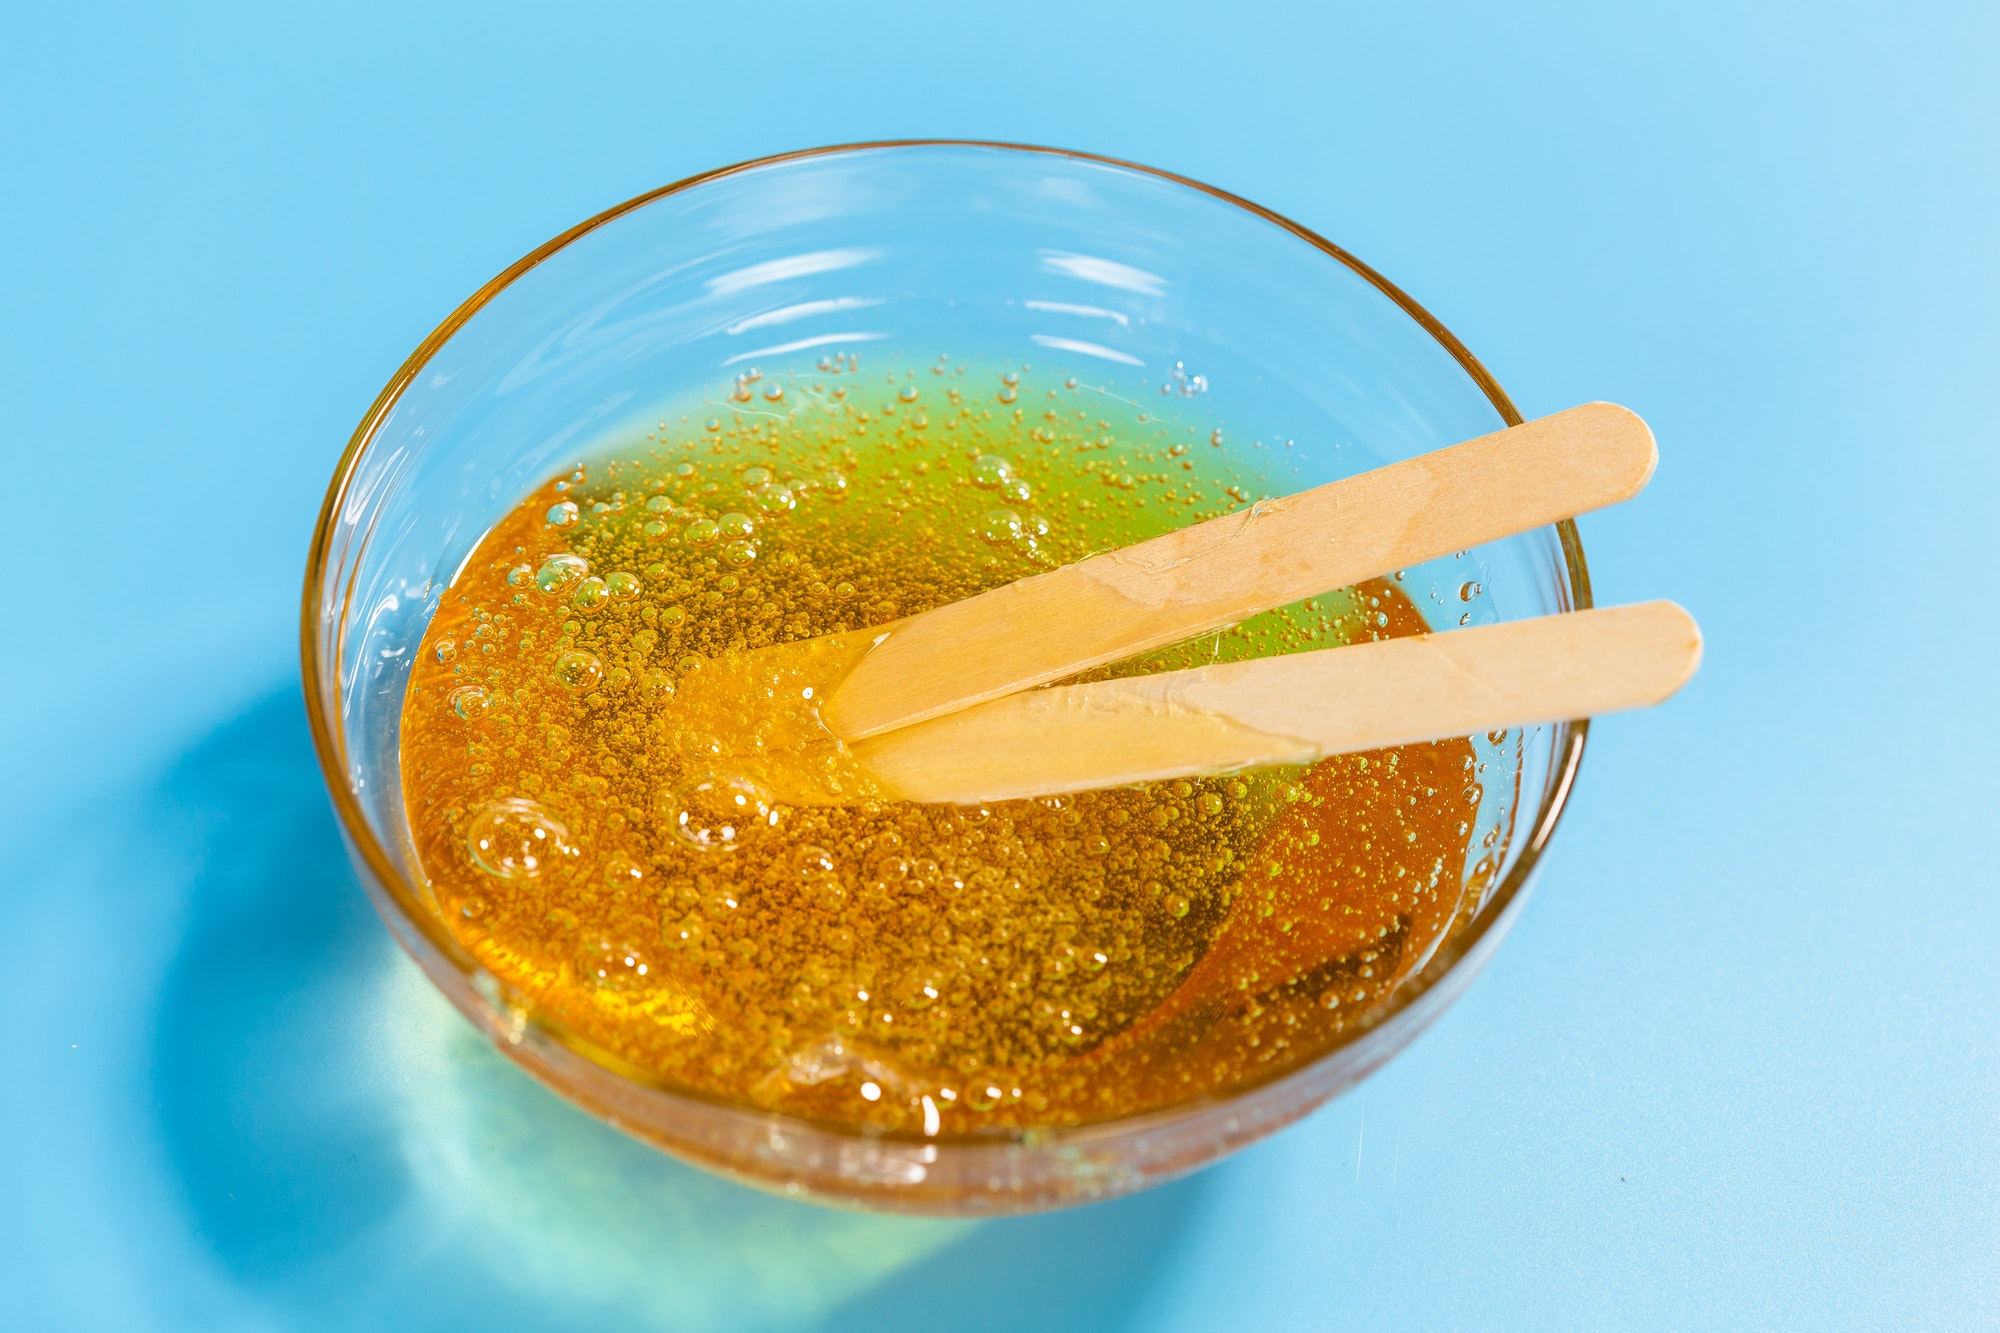 Depilation and beauty concept - close-up of sugar paste or honey wax for hair removing spatula with